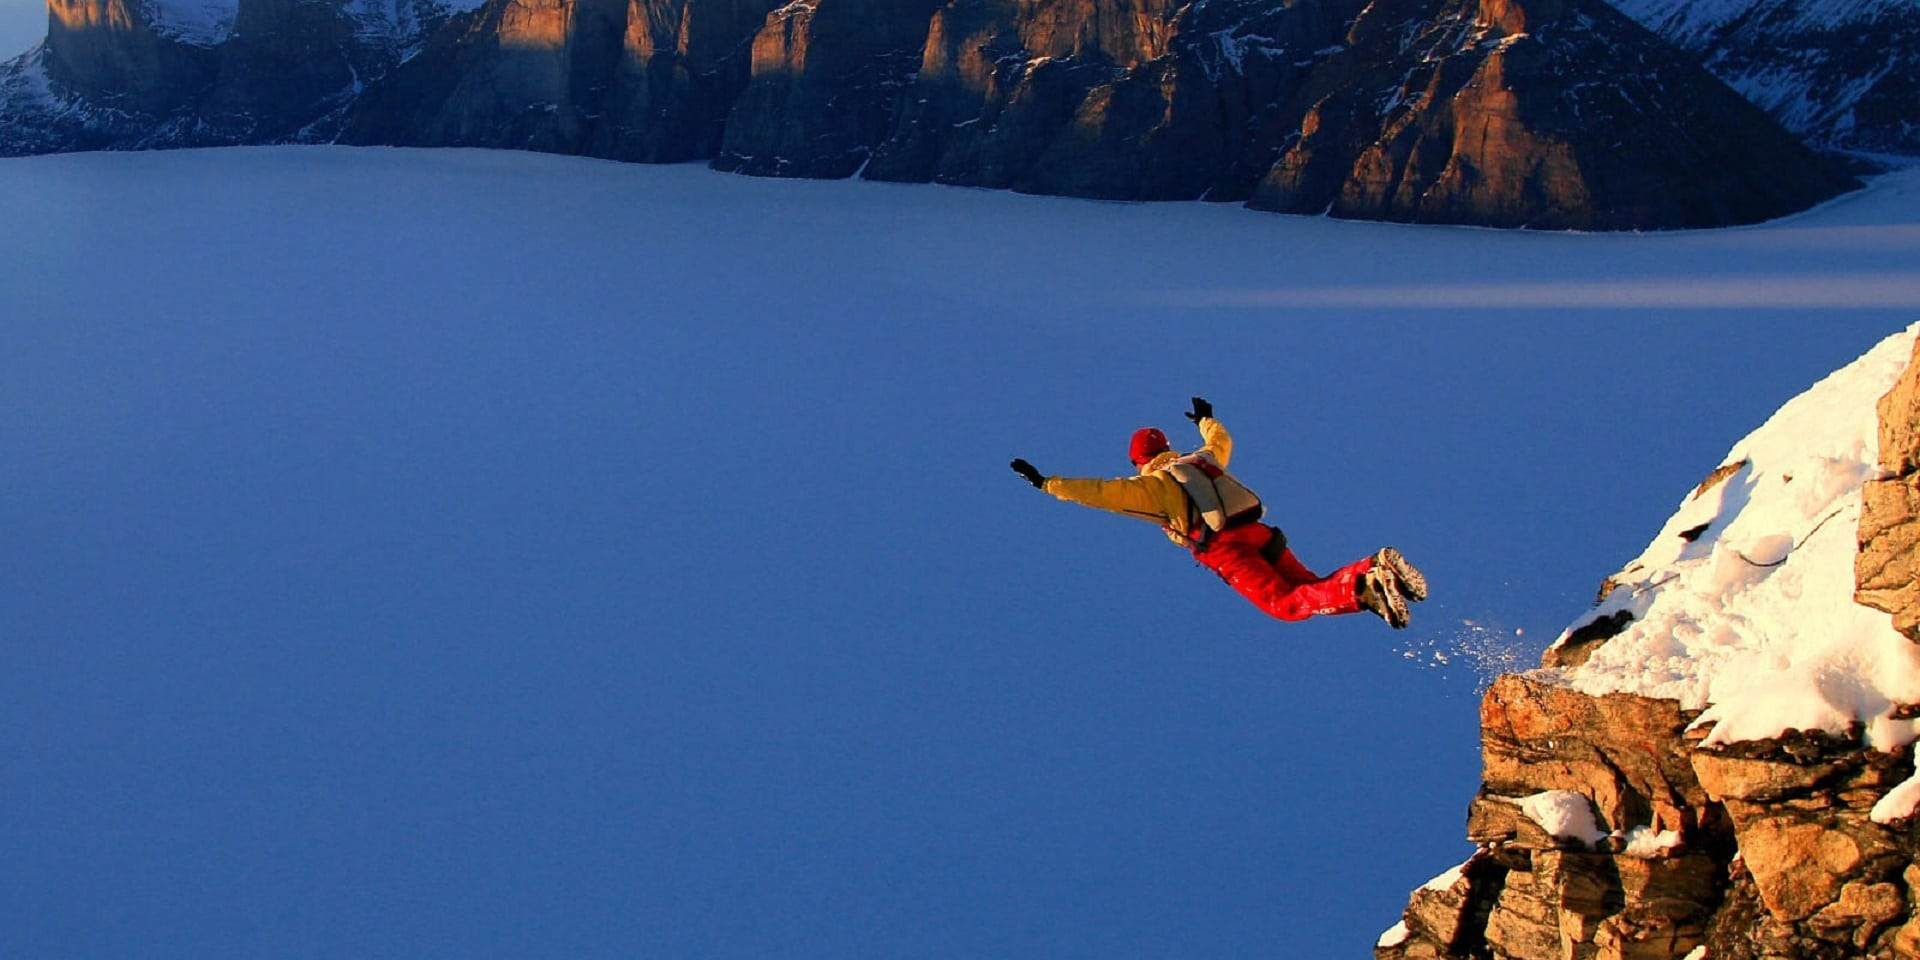 person base jumping off a cliff against a snowy mountain backdrop